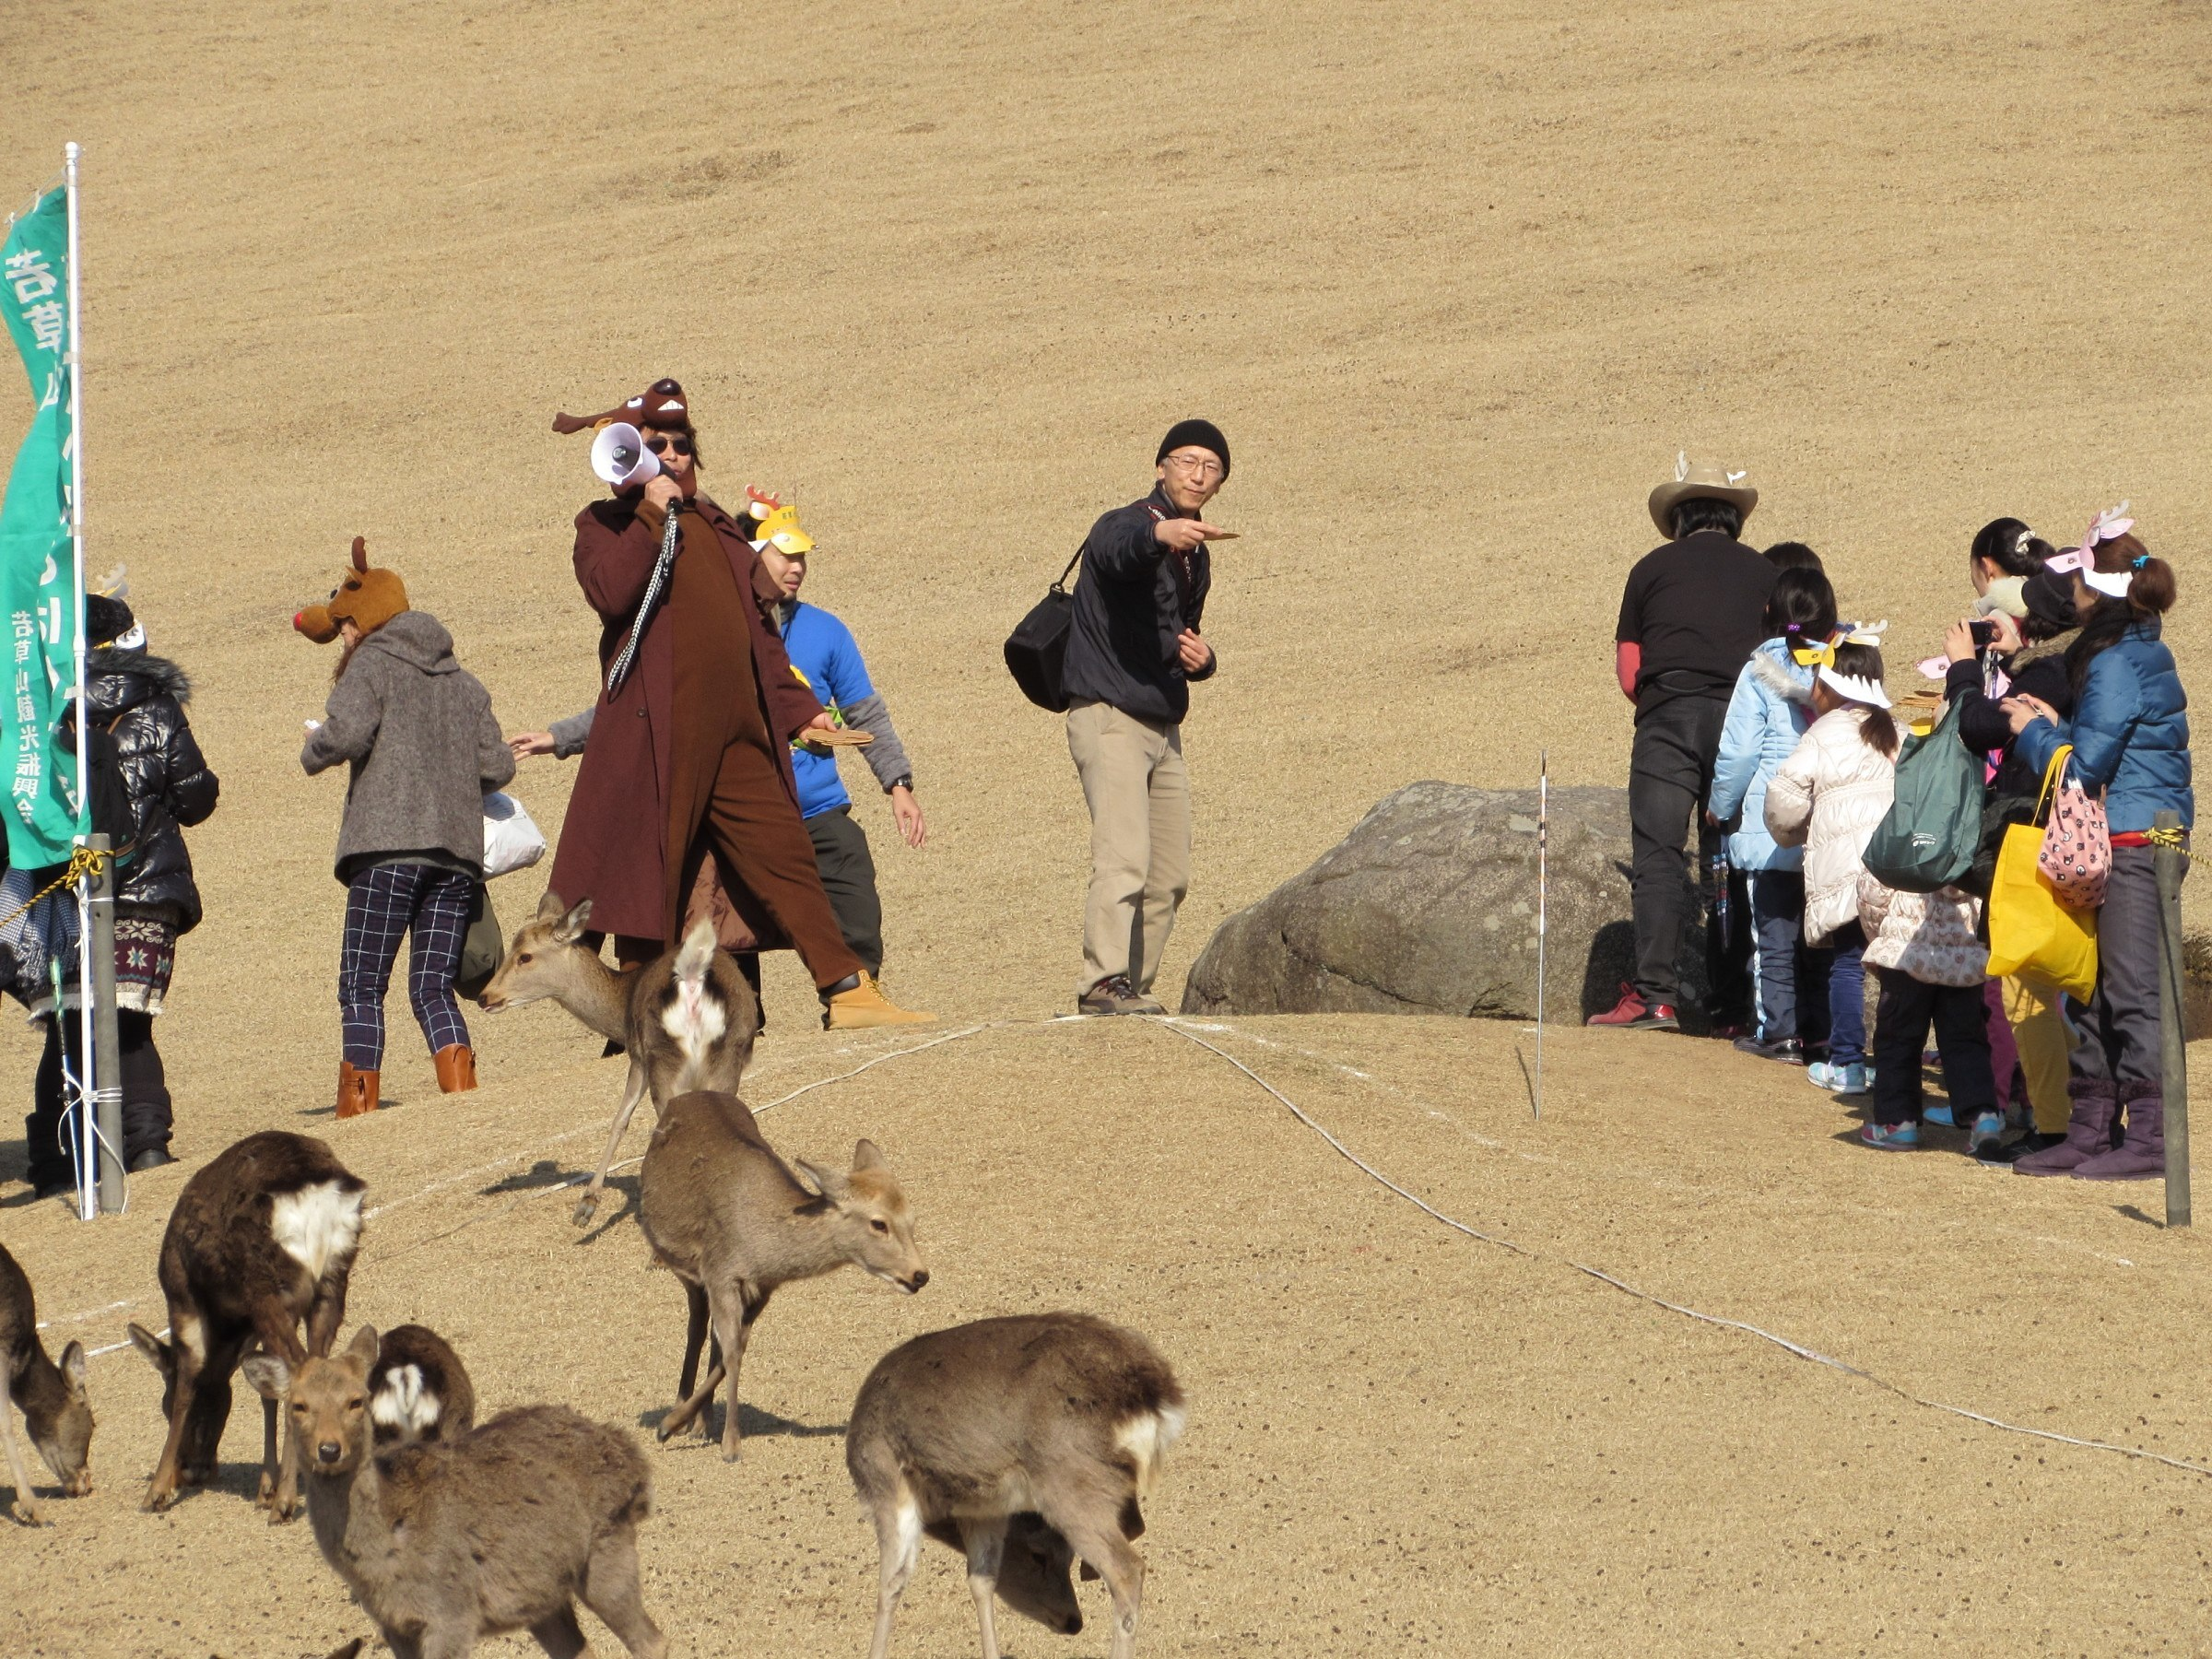 ... This is the 'Deer Cracker Throwing Tournament'. Hundreds of people line up to throw giant 'Senbei' rice crackers frisbee style to crowds of eagerly awaiting deer. People whose crackers travel furthest are eligible for a prize!